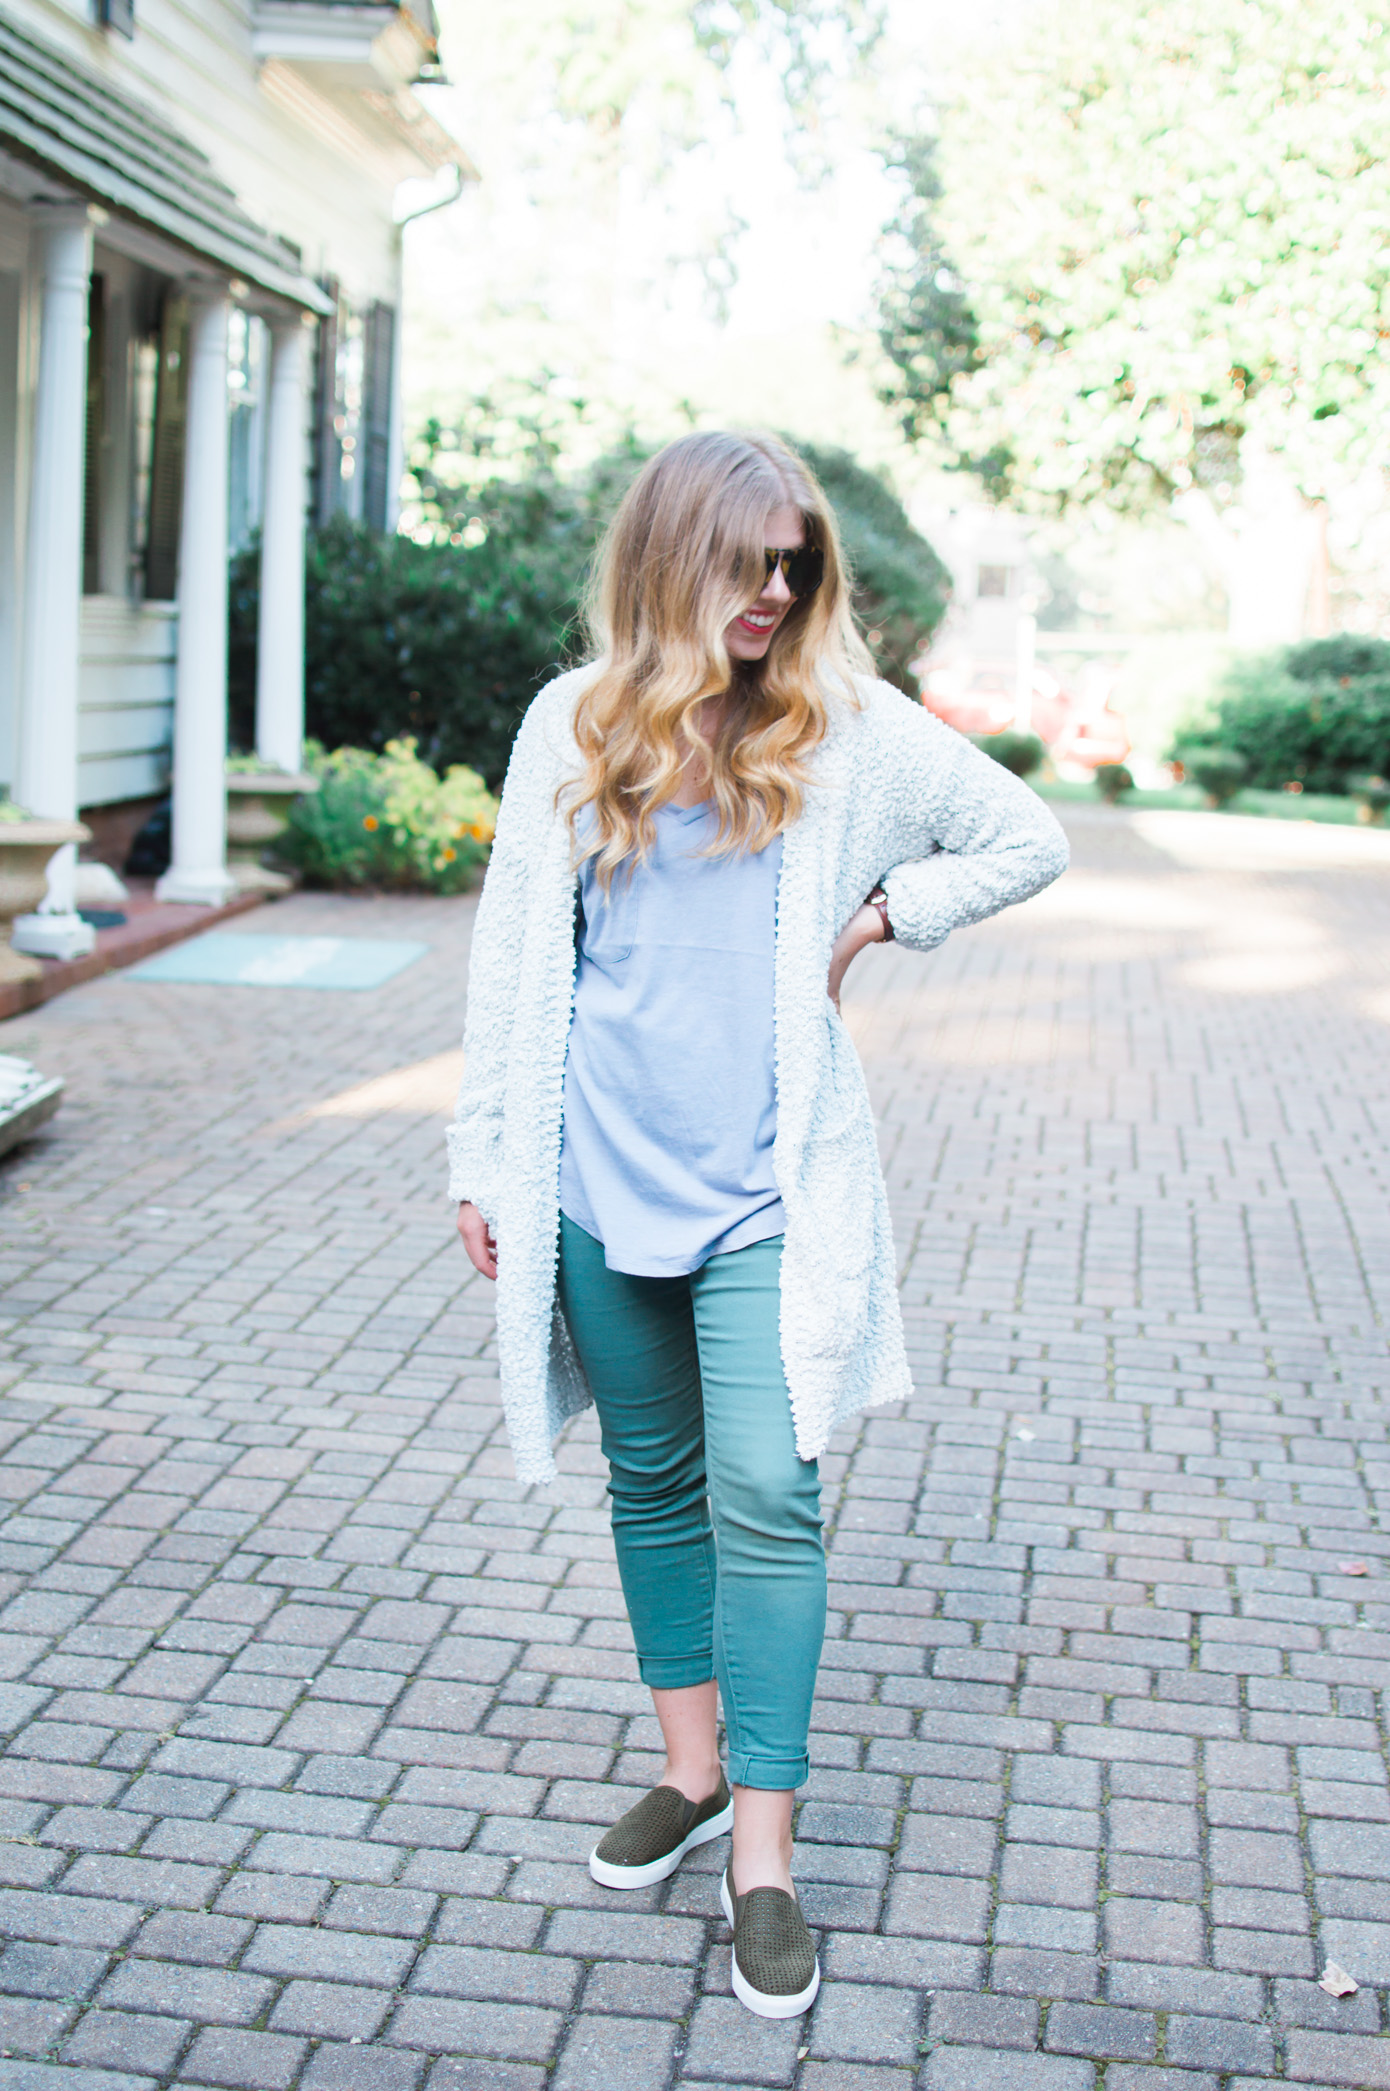 Olive Green Pants for Fall | How to Style Green Pants | Louella Reese Life & Style Blog